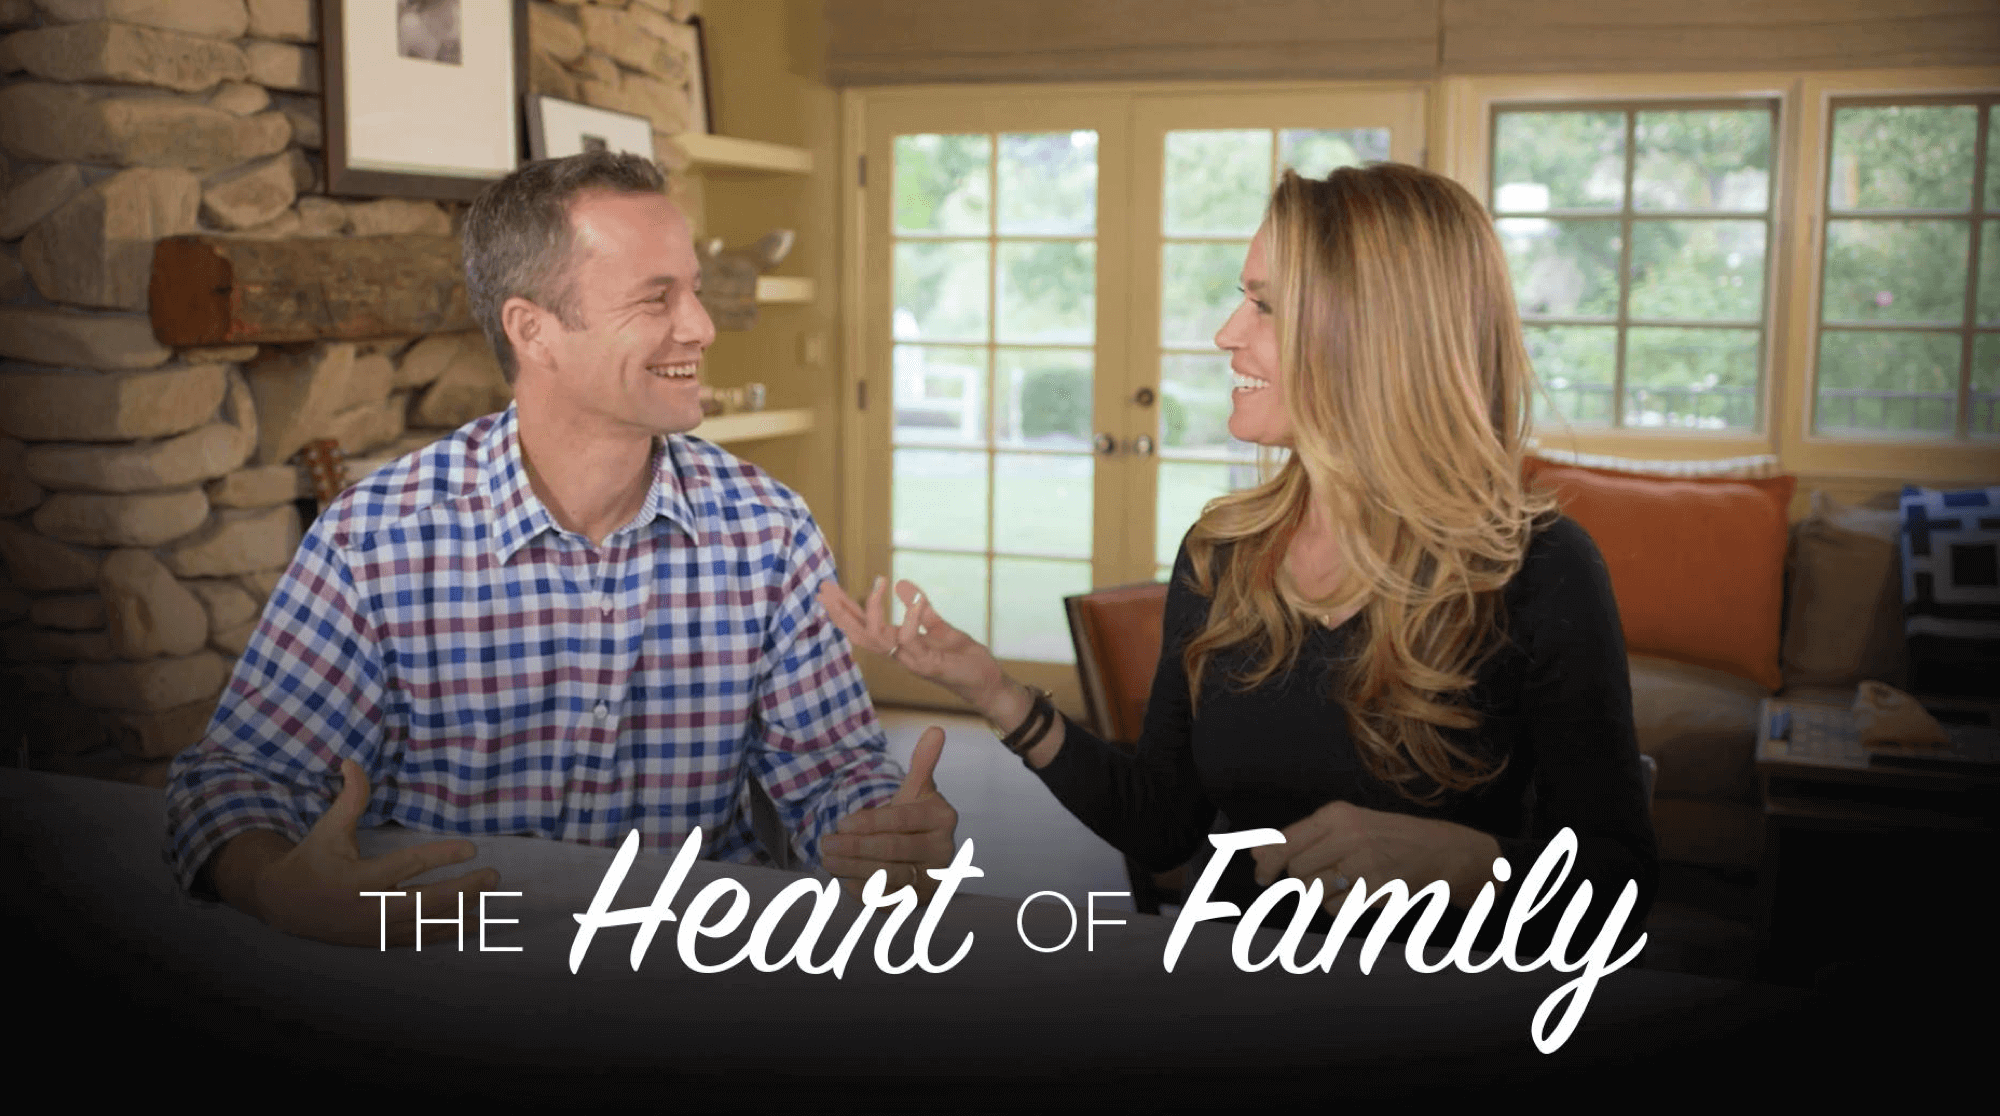 best-christian-courses-studies-The-heart-of-family-kirk-cameron